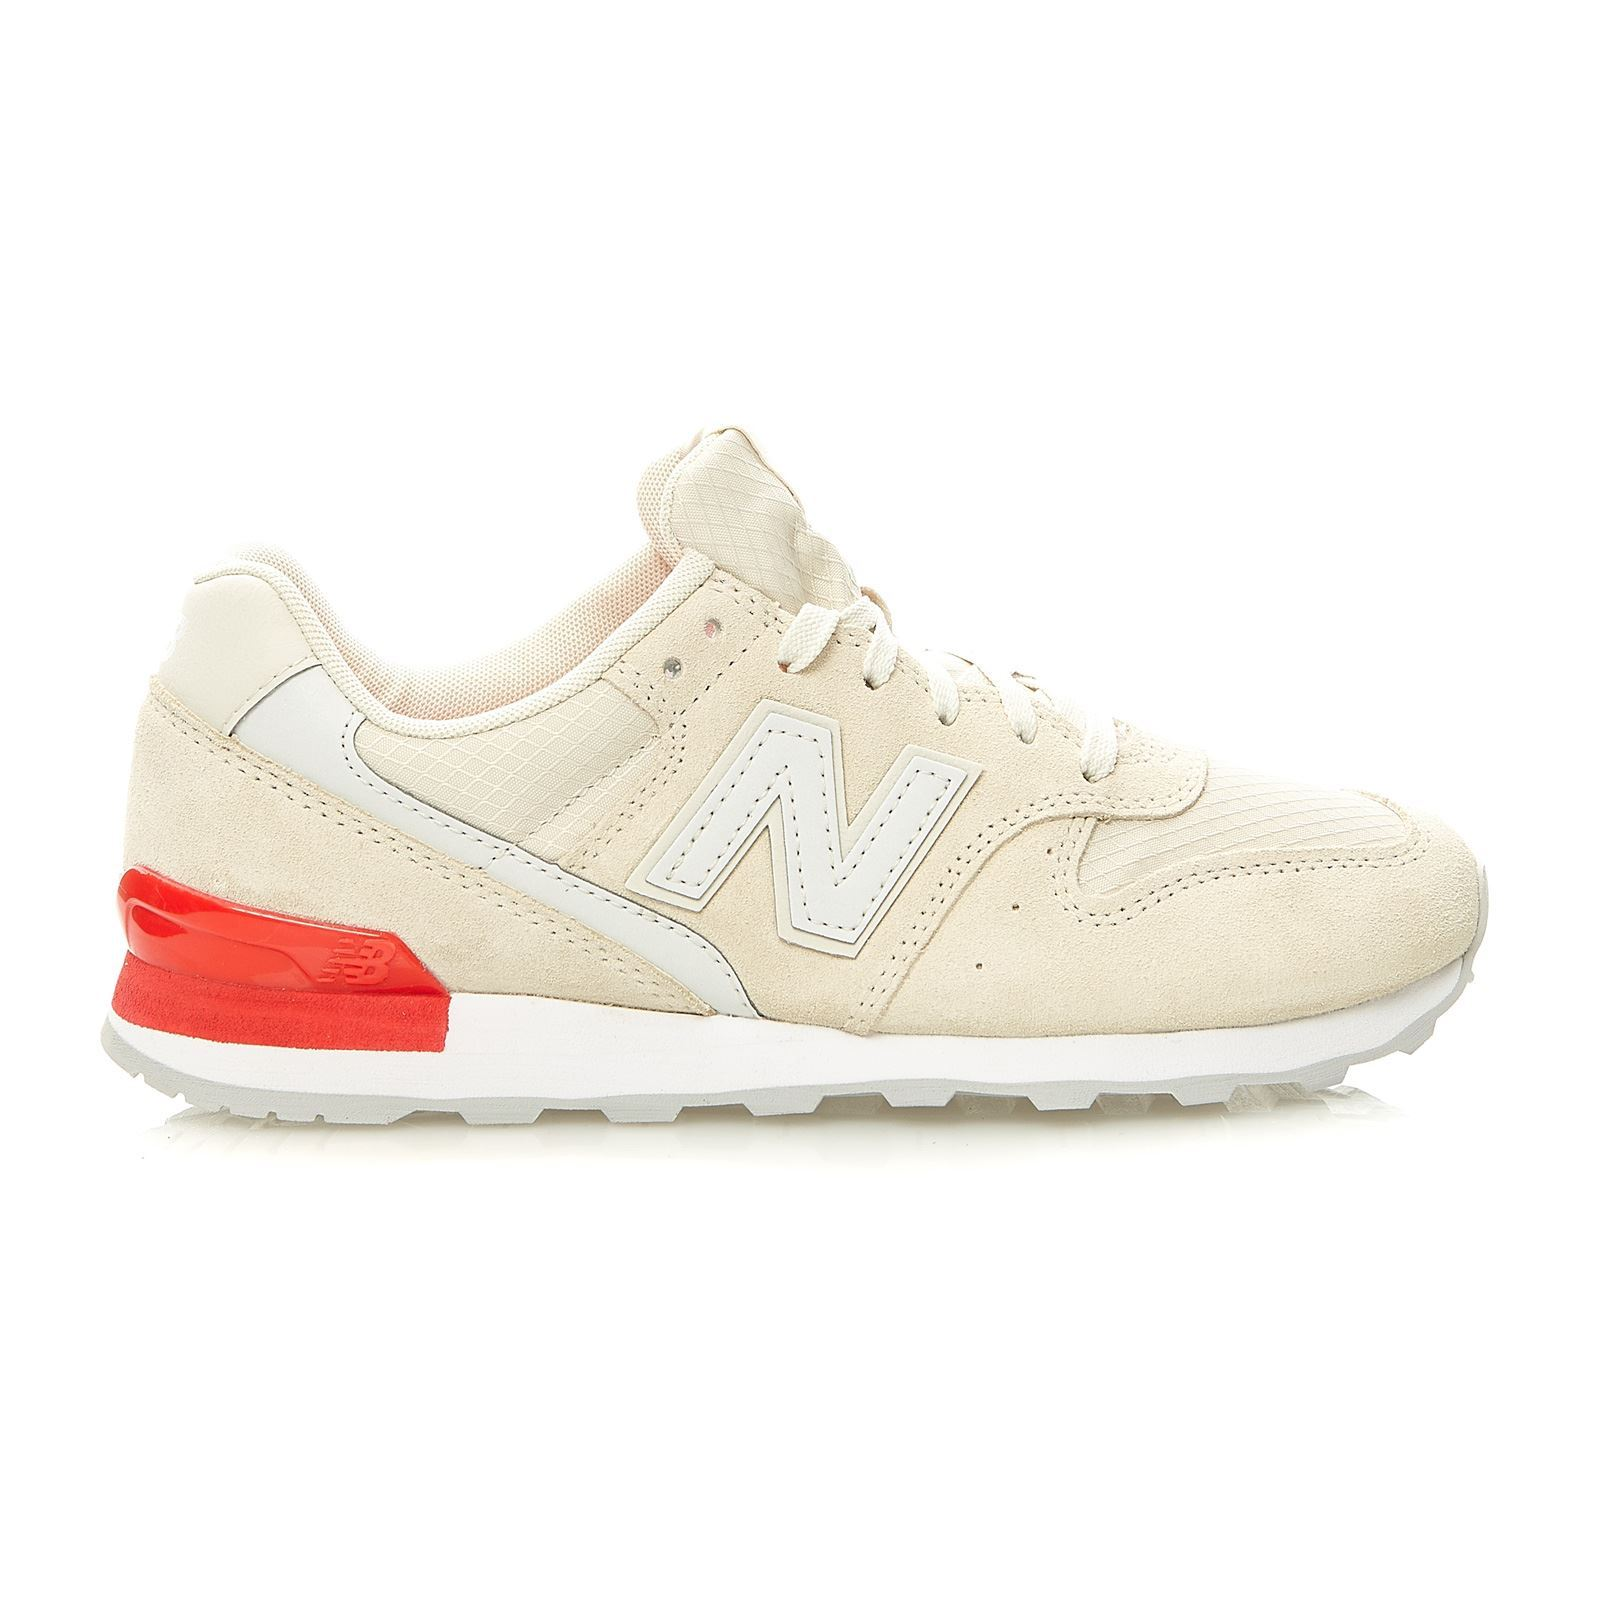 new balance wr996 turnschuhe sneakers beige brandalley. Black Bedroom Furniture Sets. Home Design Ideas